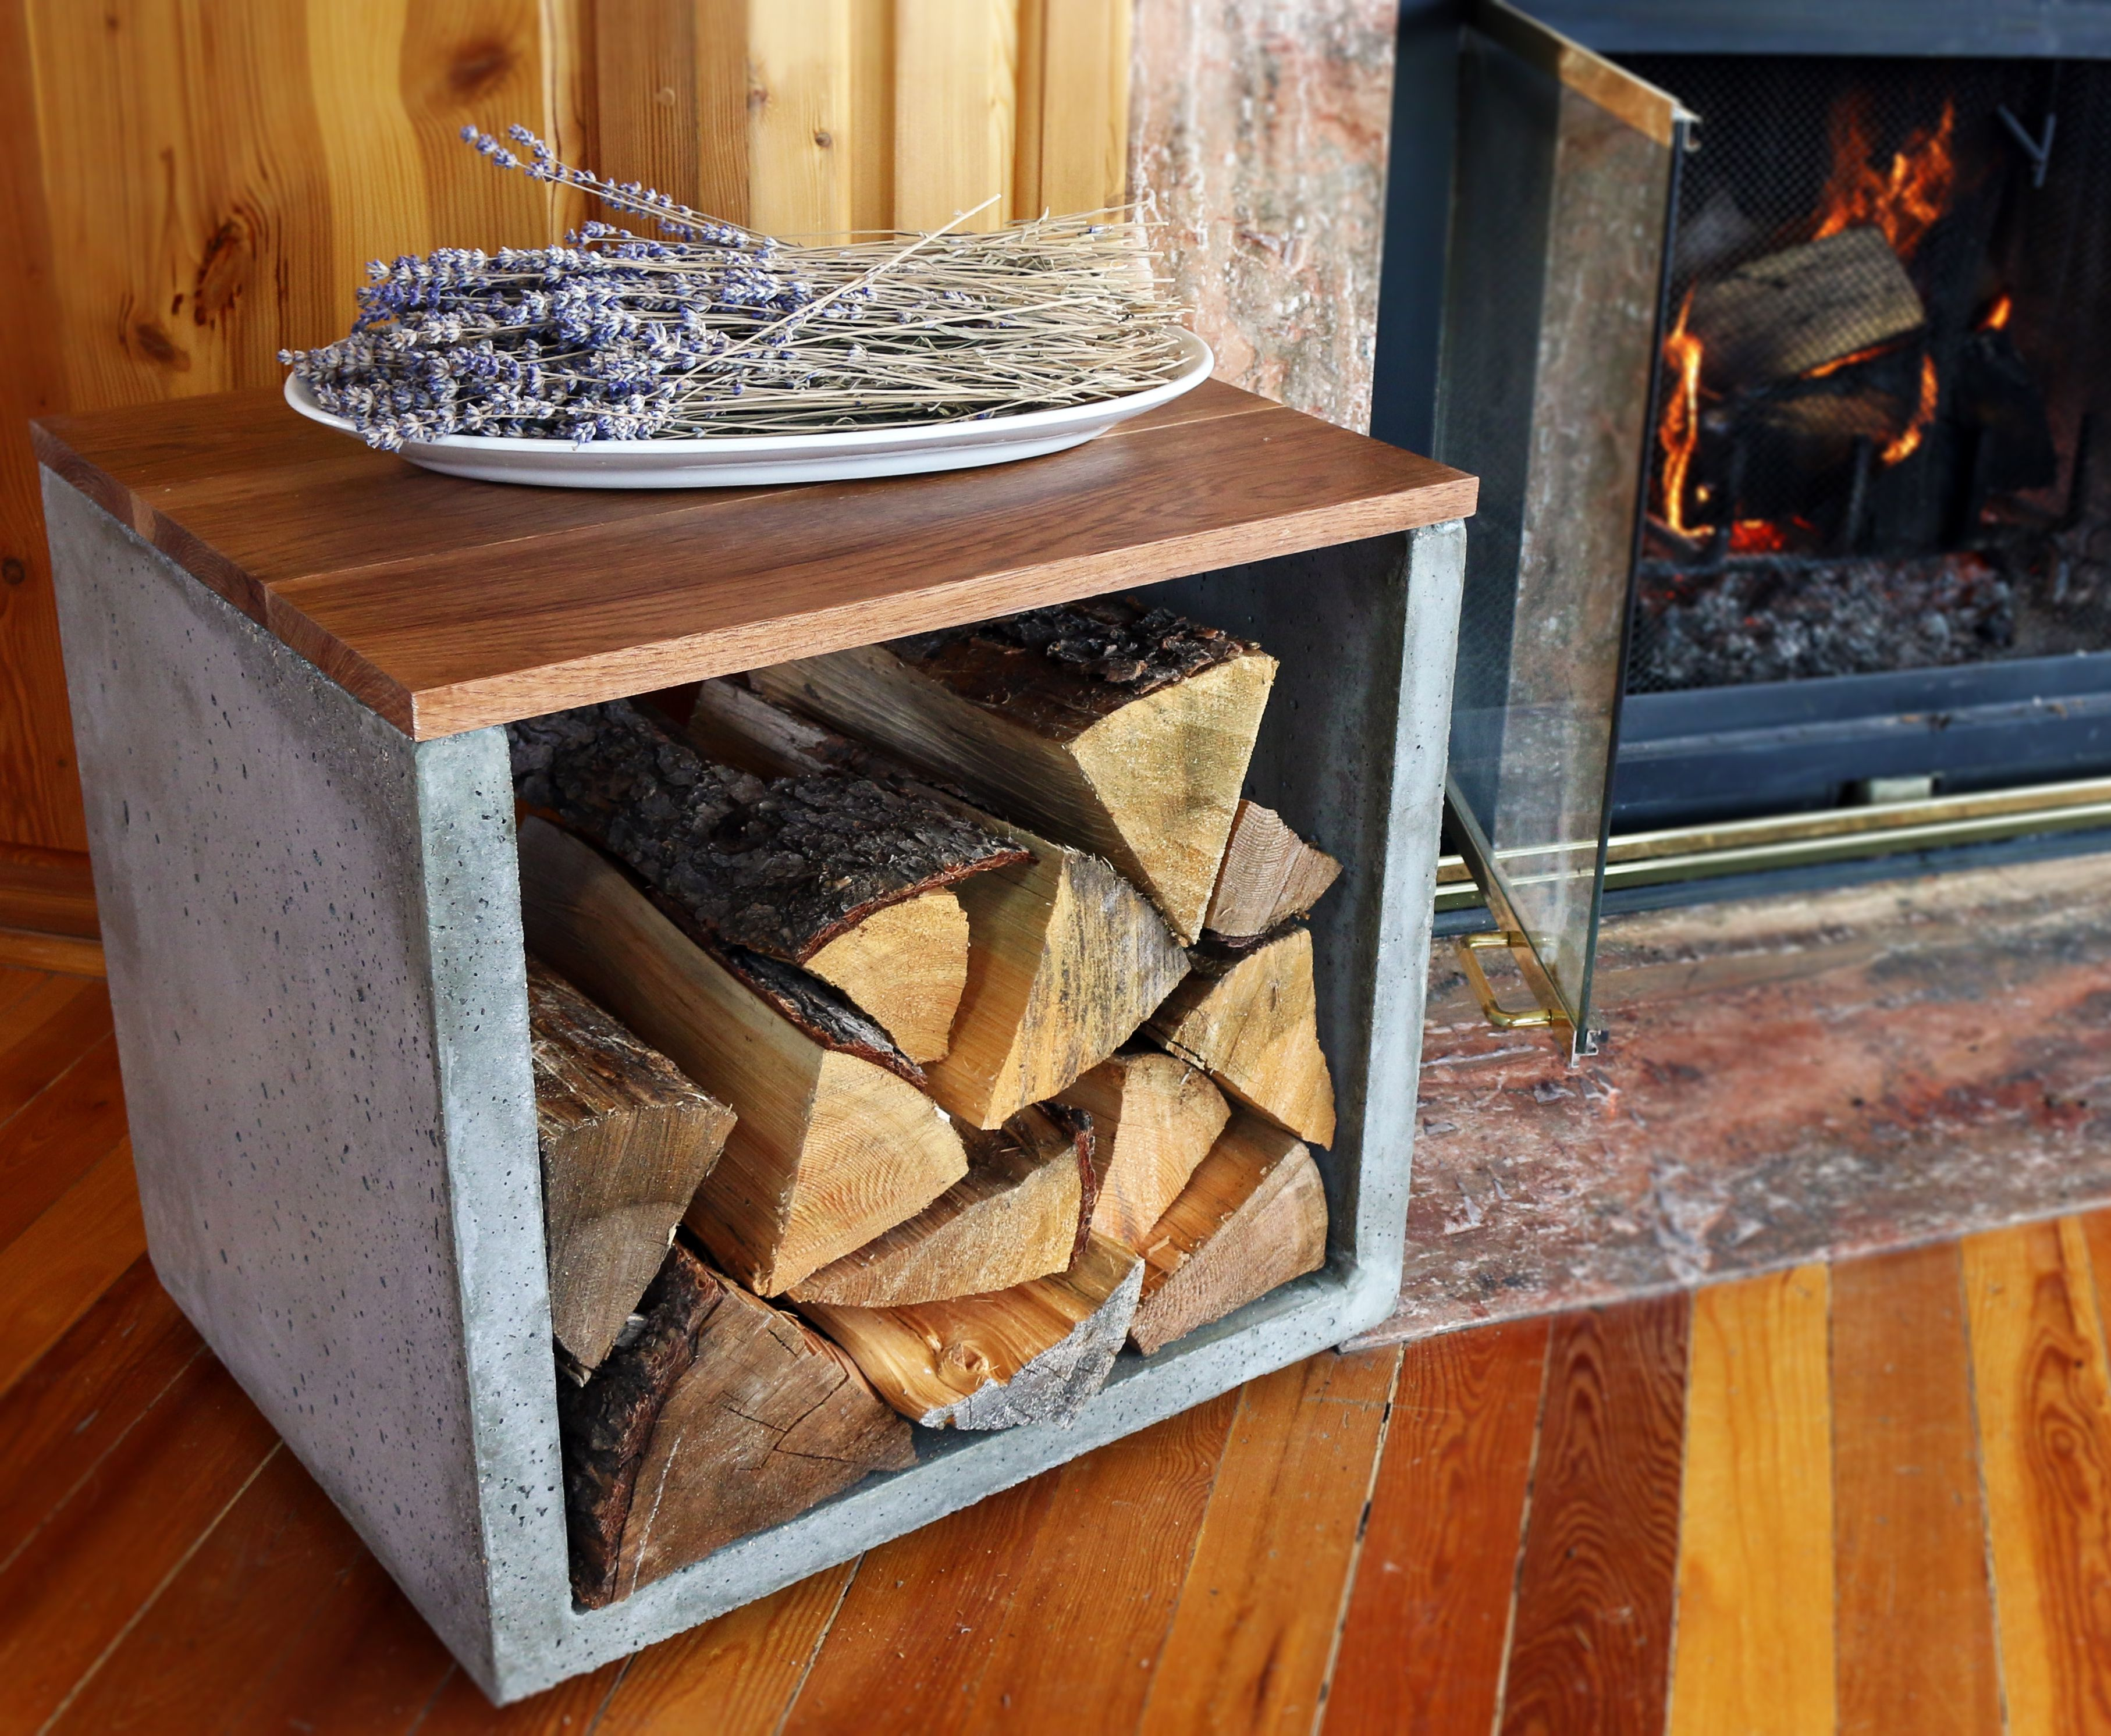 Concrete woodworking firewood firewood holder log holder concrete log holder modern concrete interior design fireplace